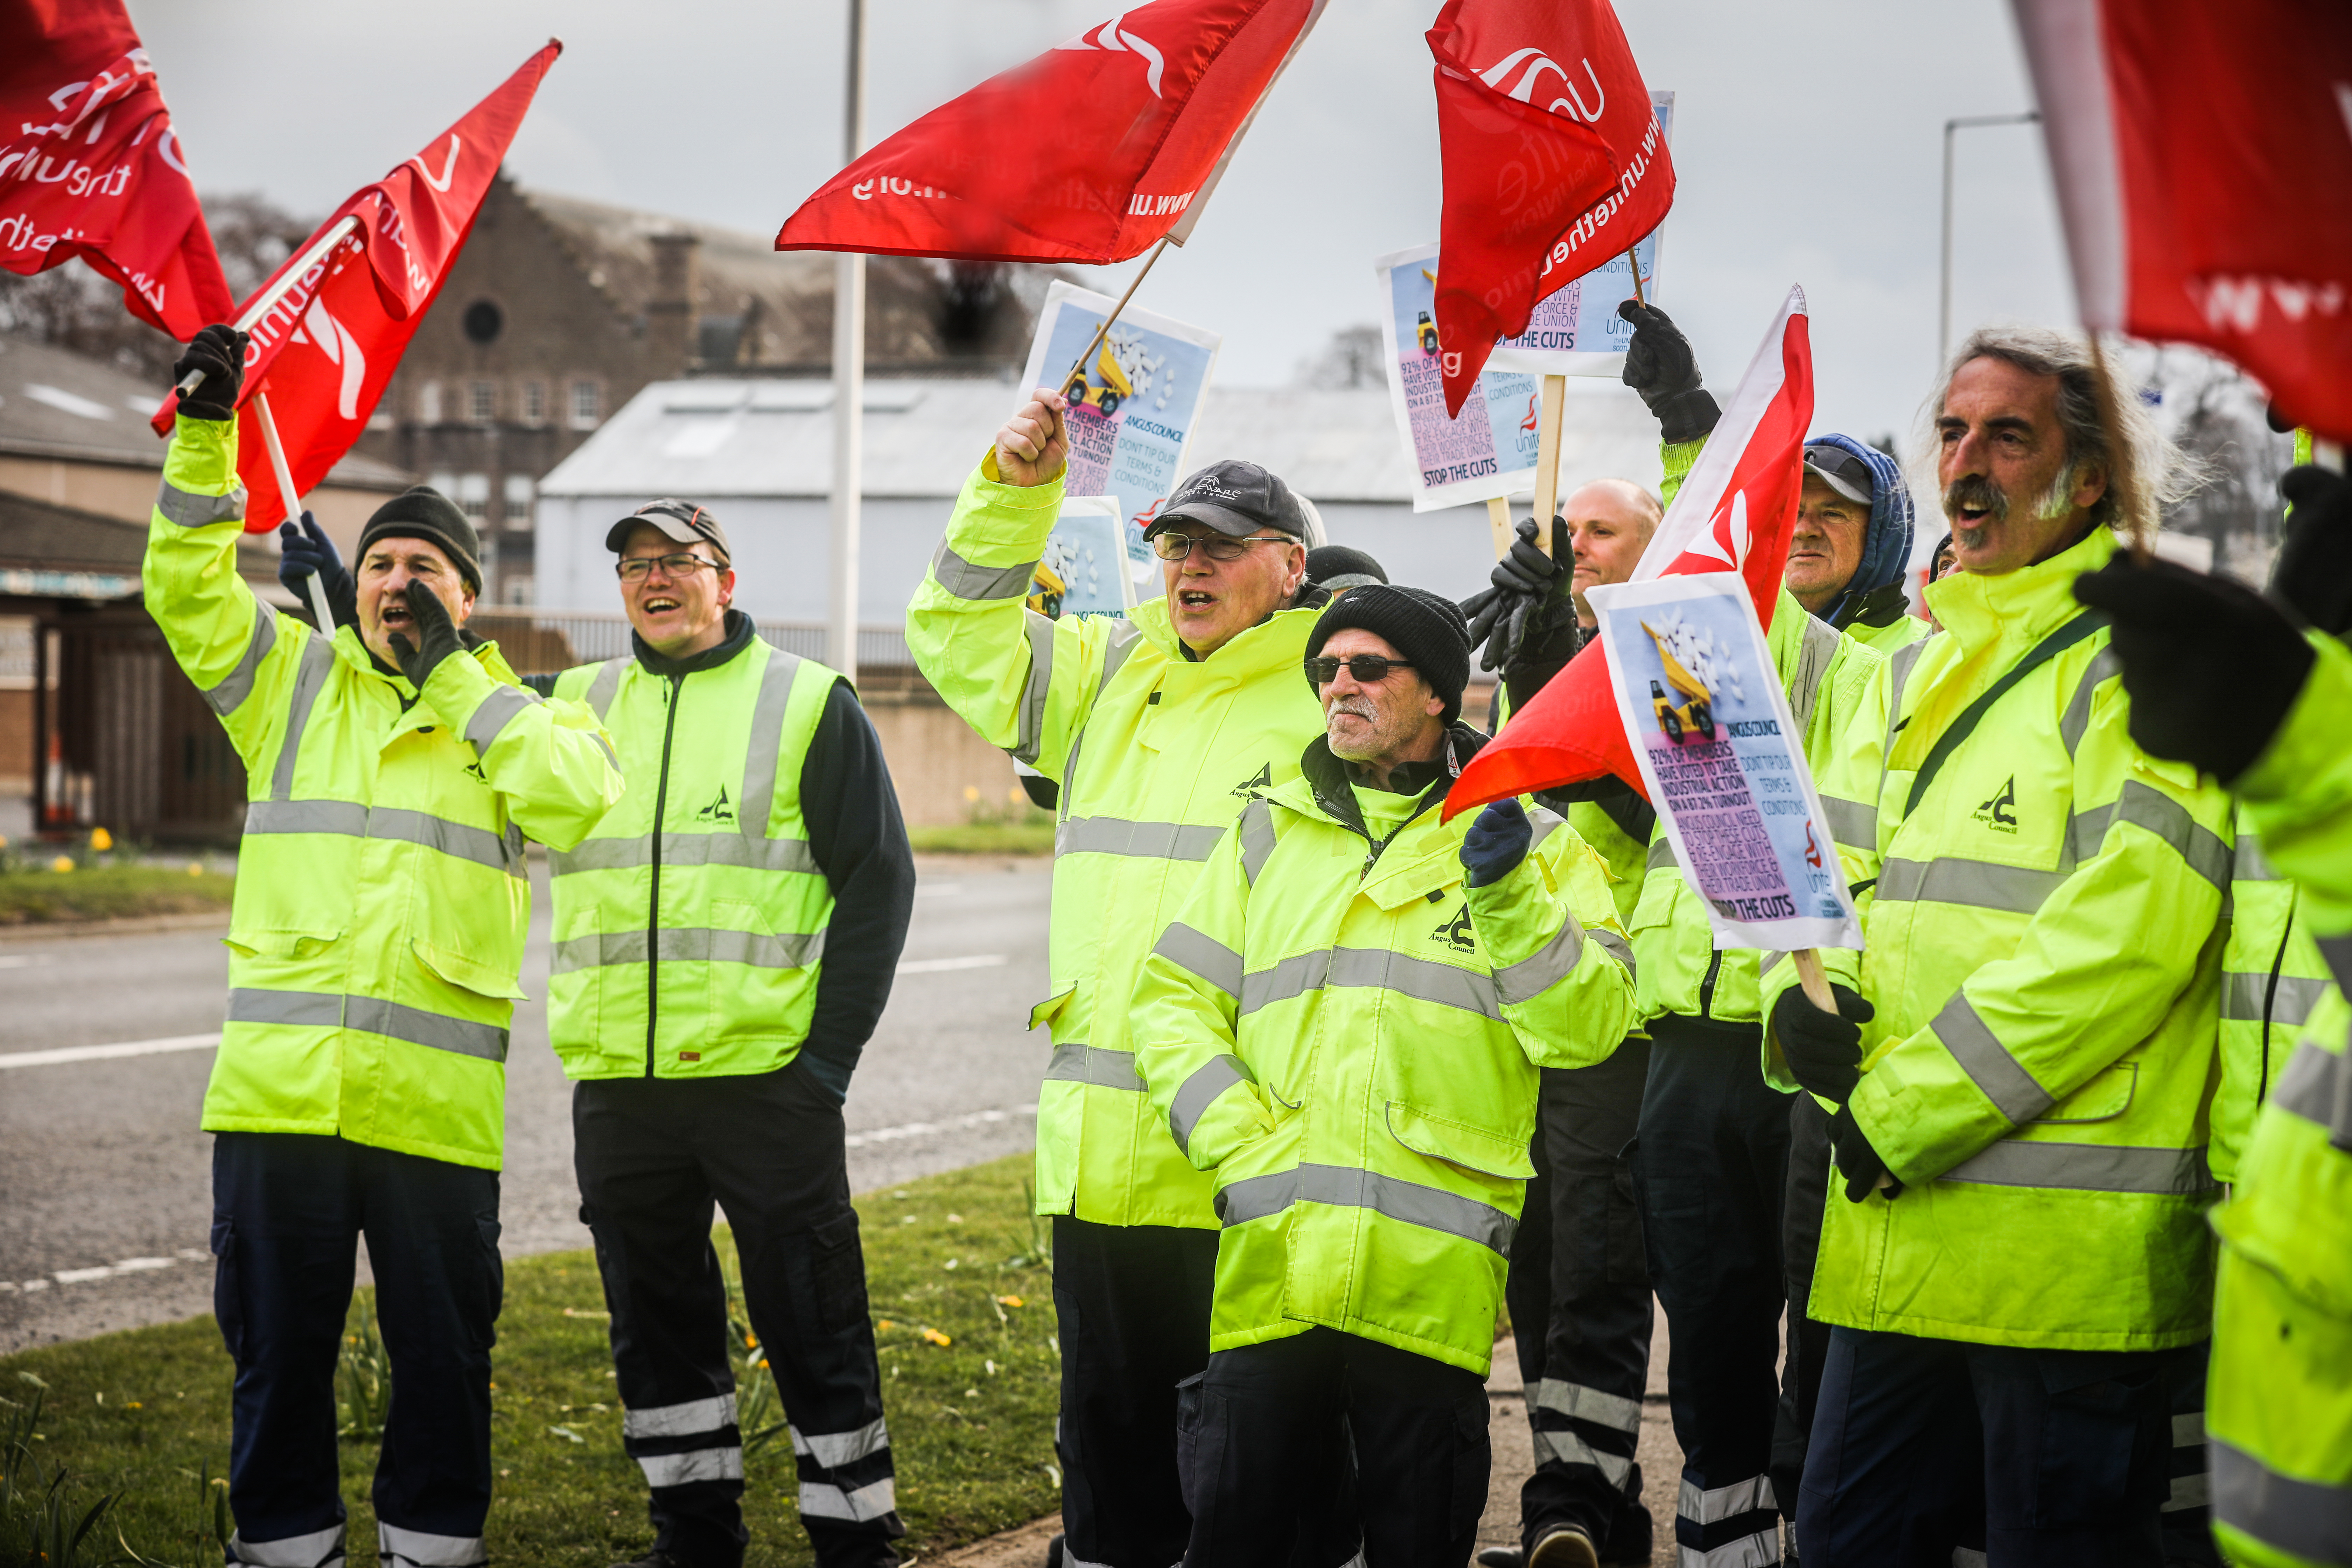 Bin workers involved in the Angus strike action.